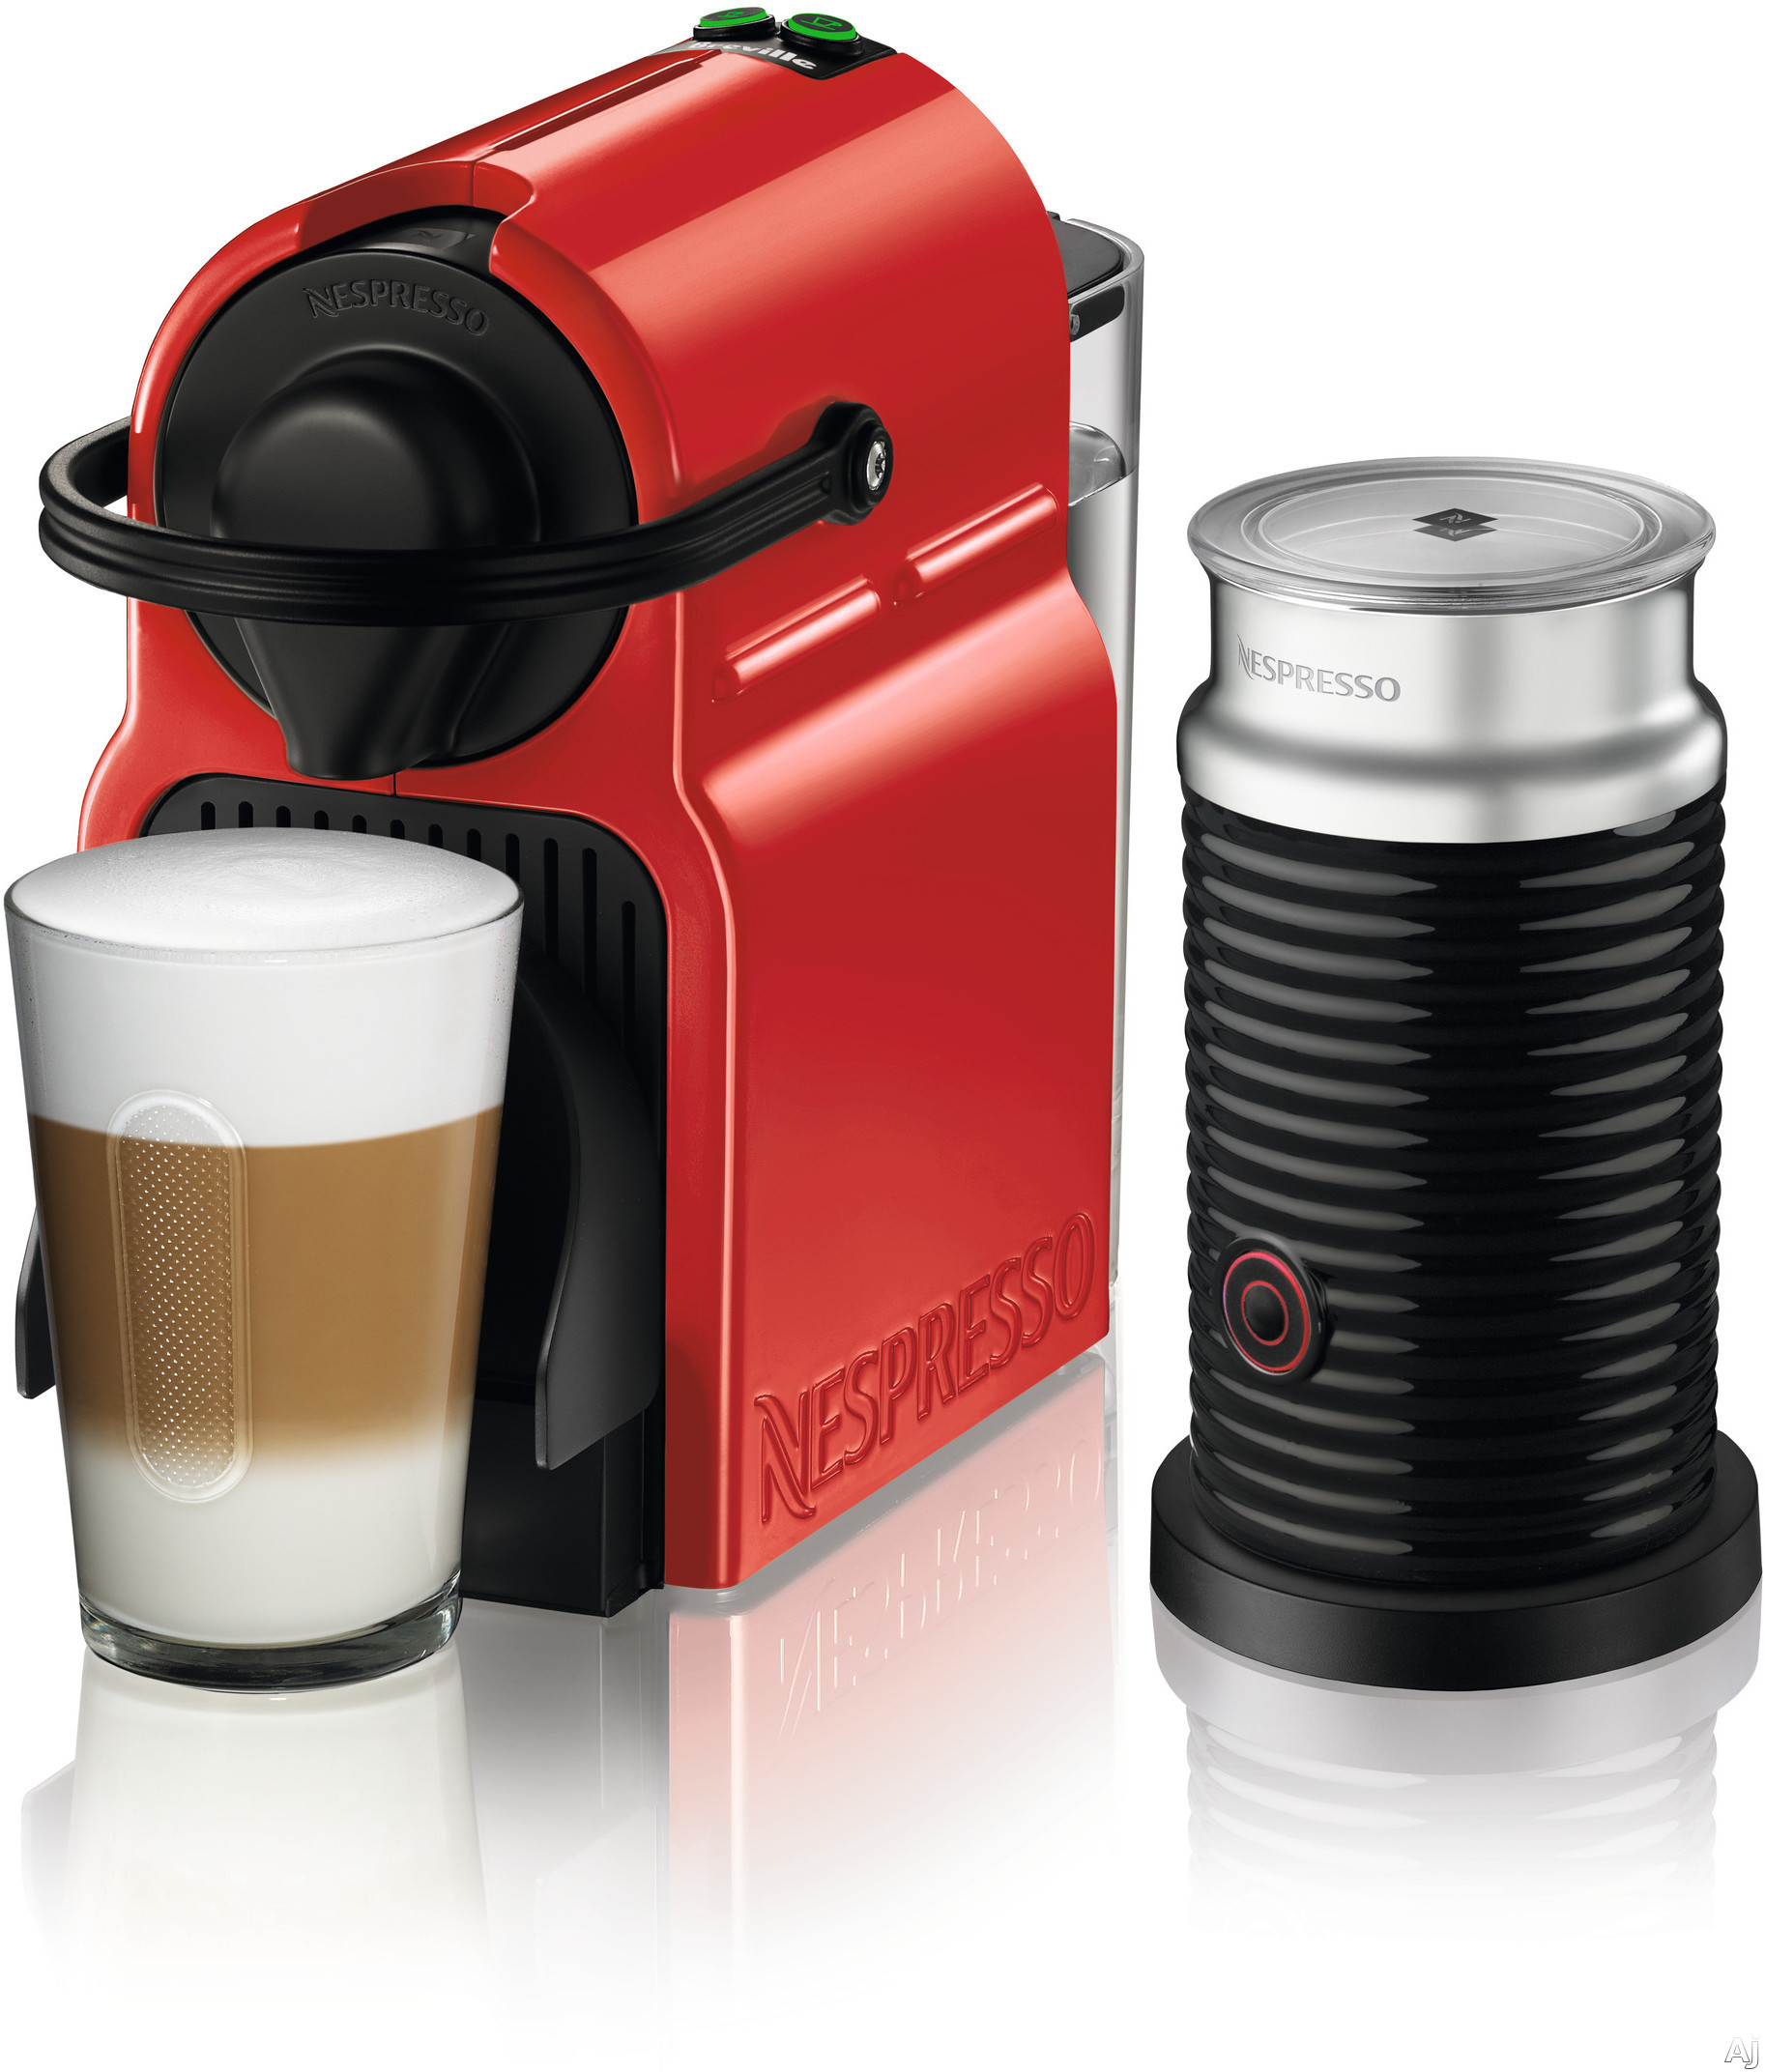 Nespresso Original Line BEC150RED1AUC1 Inissia Espresso Machine and Milk Frother with 2 One Touch Presets, Fast Preheat, Auto Power-off, 16 Nespresso Capsule Tasting Pack, Folding Drip Tray, Auto Volu